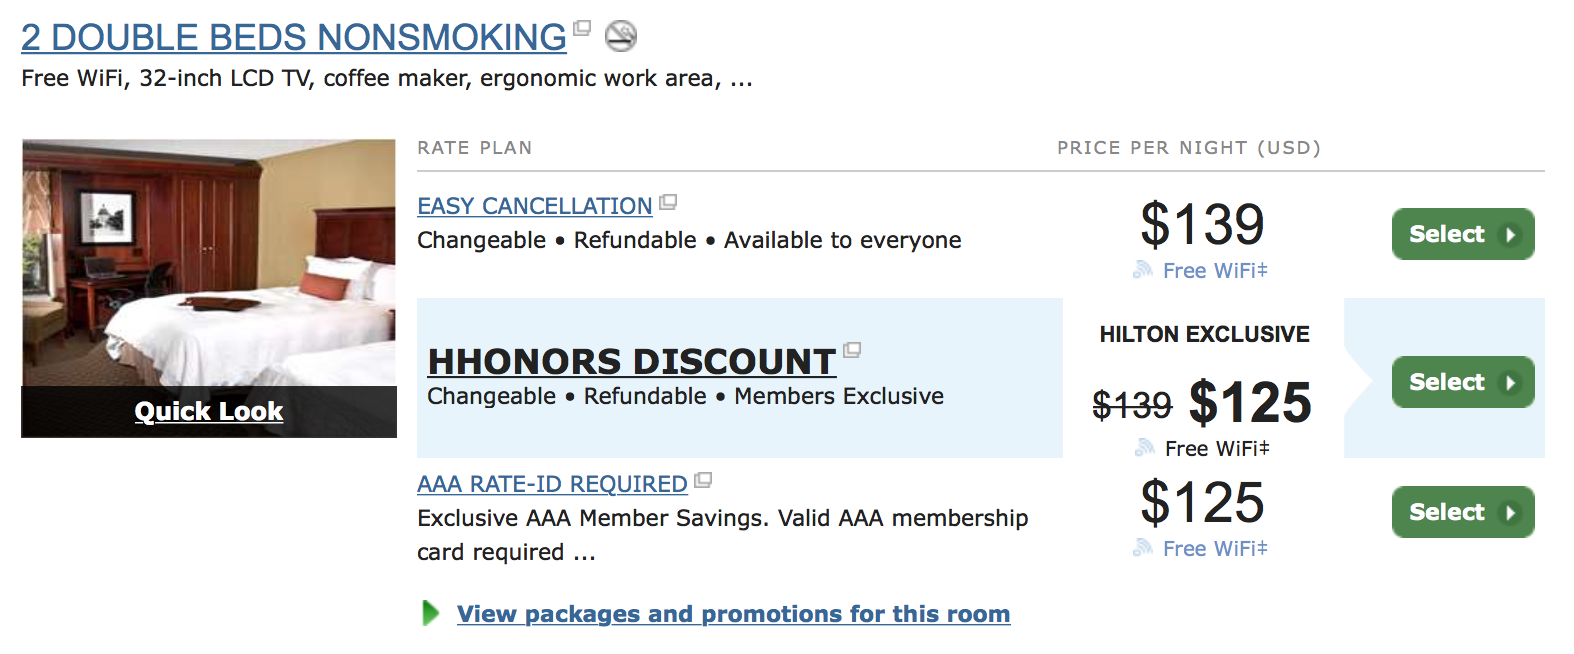 Screen shot of reservation compared to Stop Clicking Around discount.